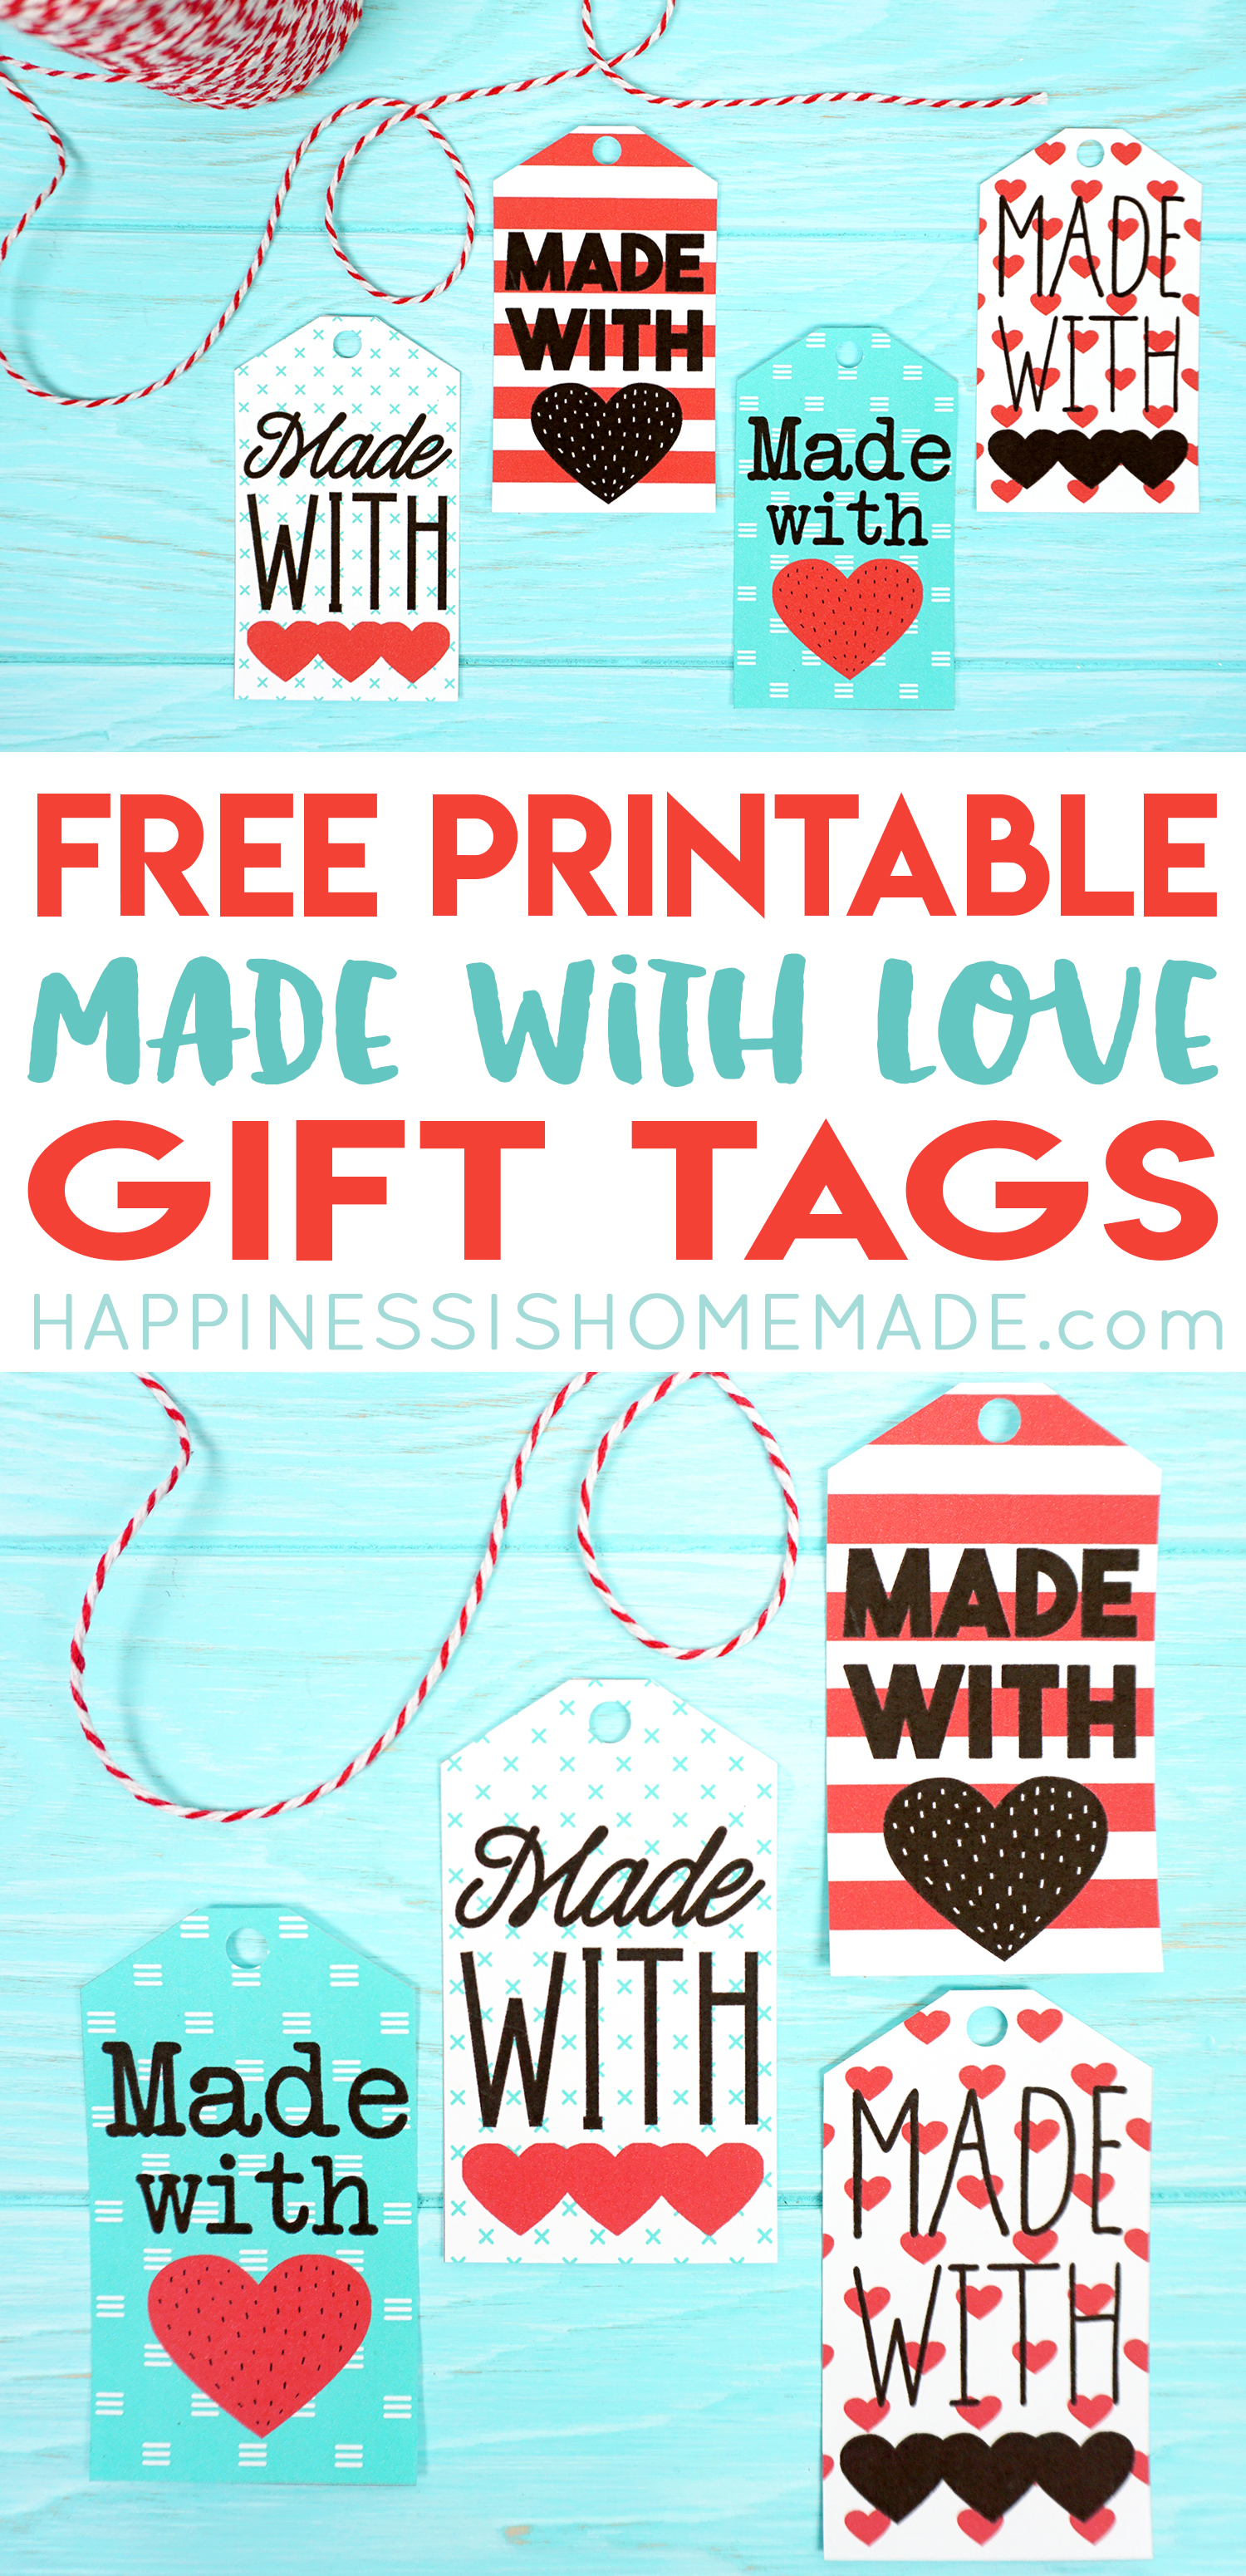 Made with Love Printable Gift Tags - Happiness is Homemade